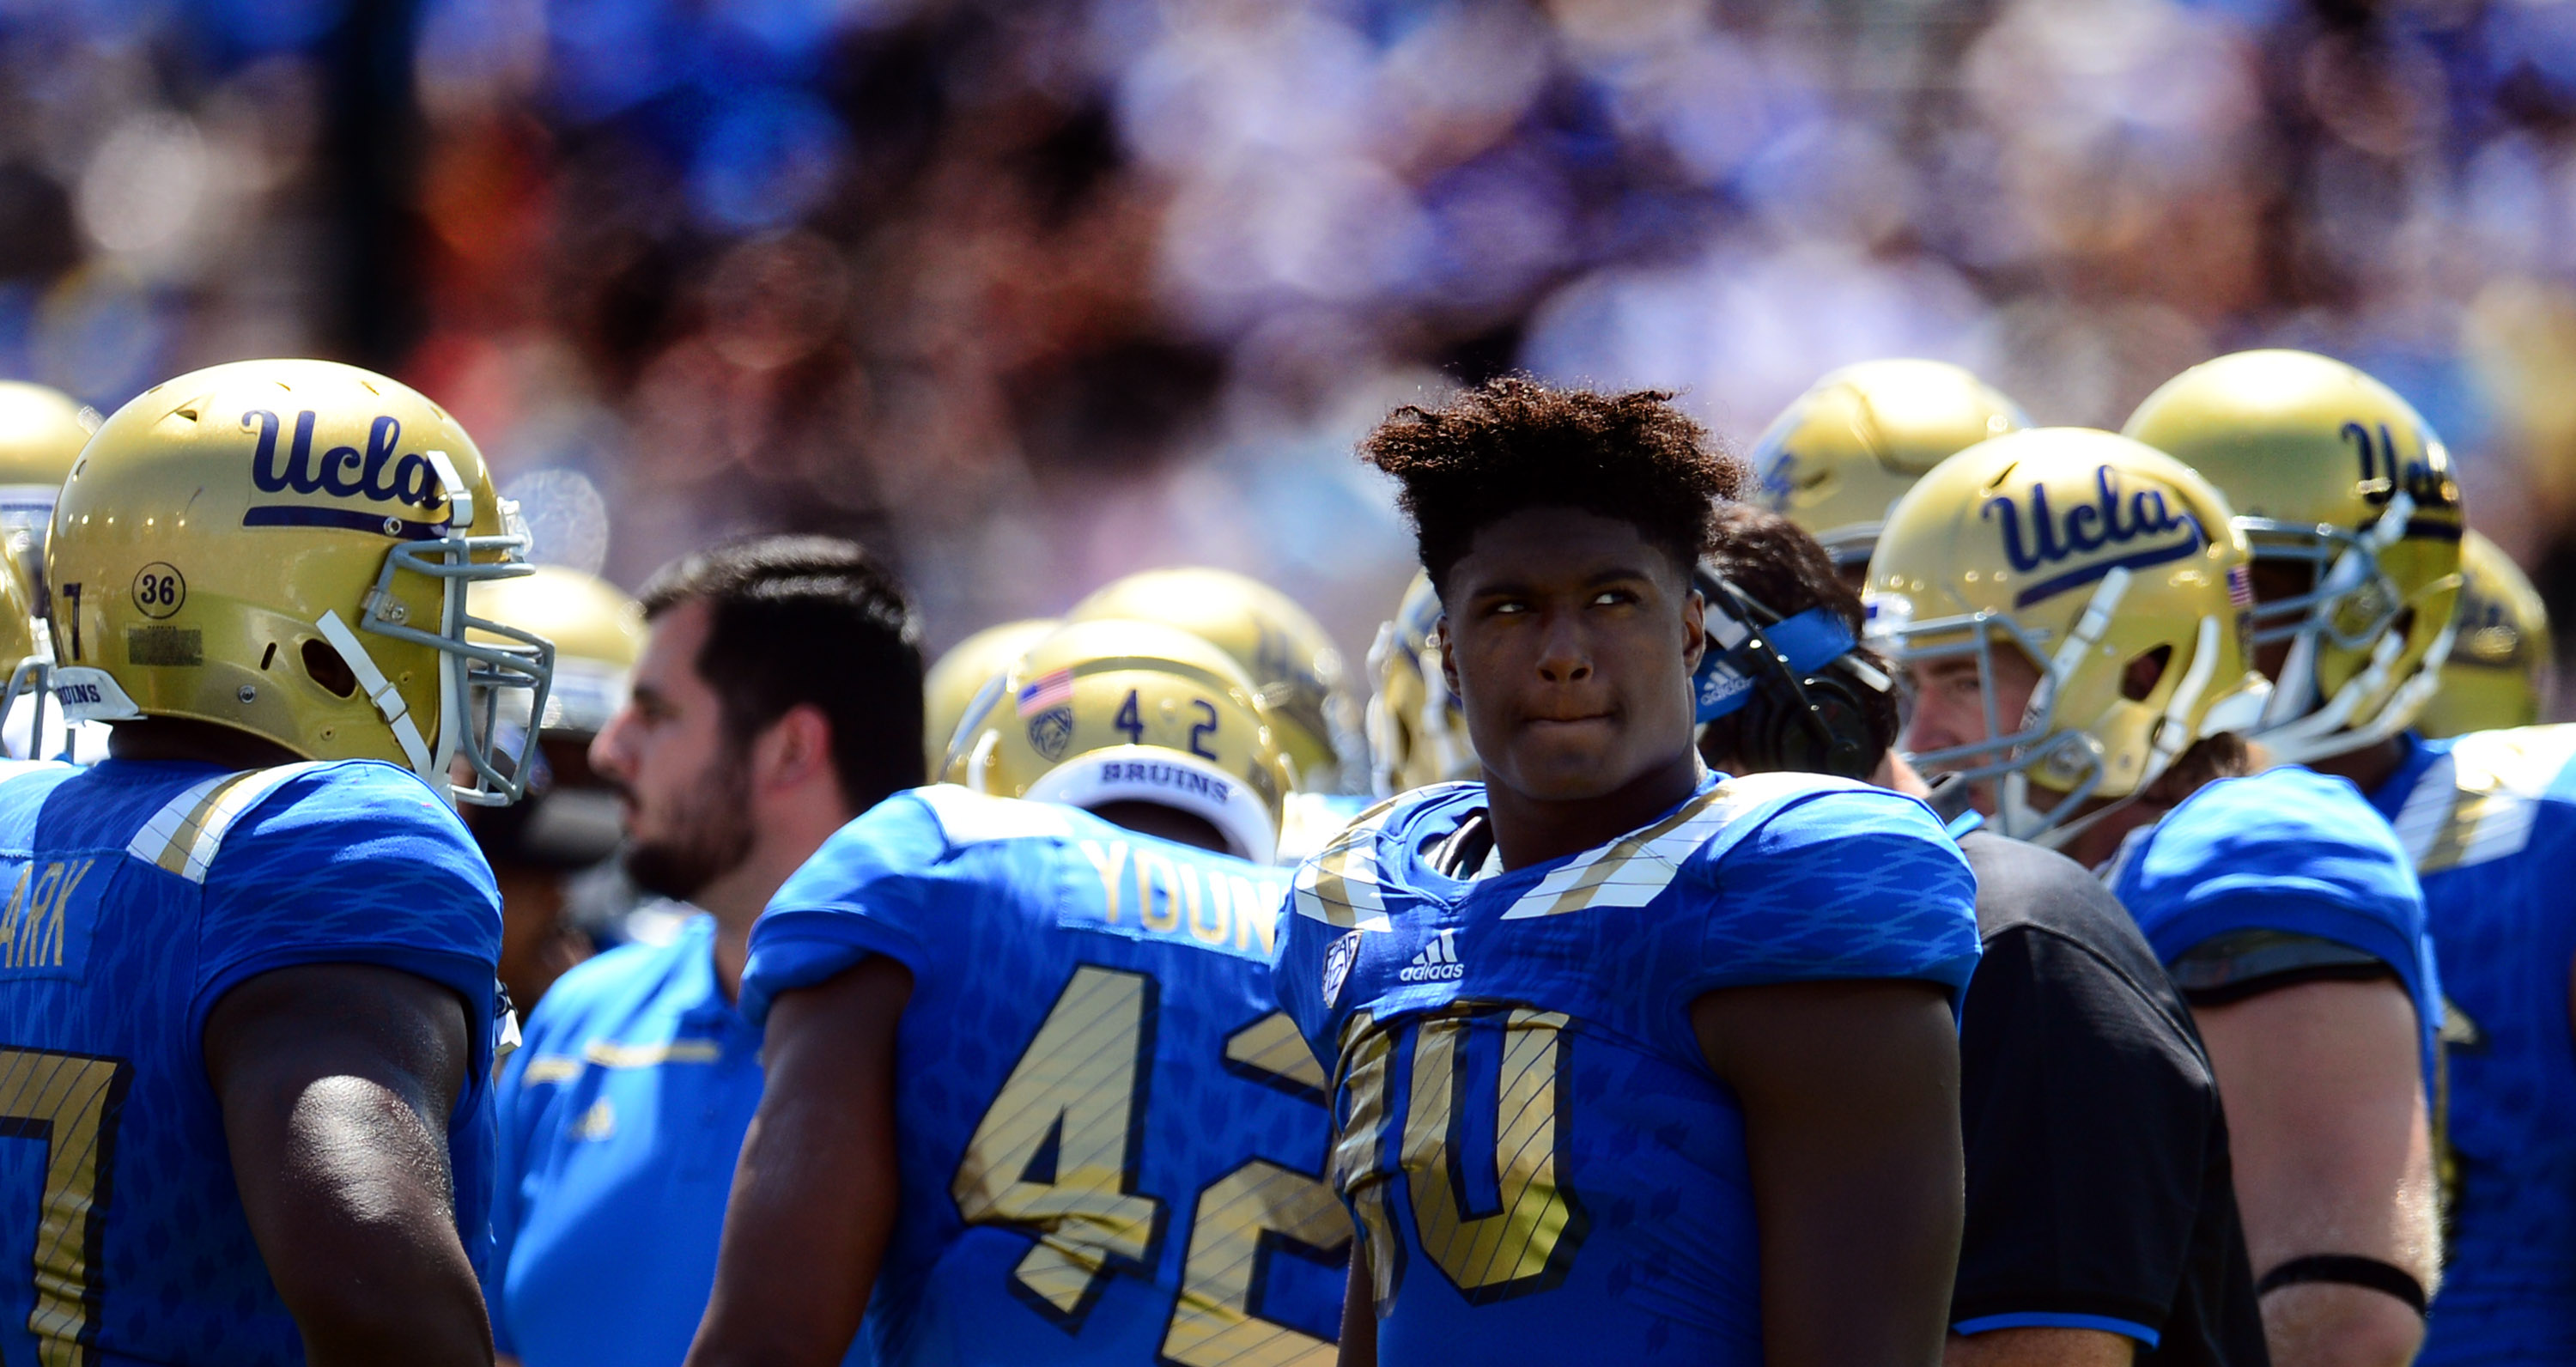 UCLA linebacker Myles Jack (30) said he was surprised that head coach Jim Mora seemed skeptical about his NFL draft decision. (Keith Birmingham/Staff)